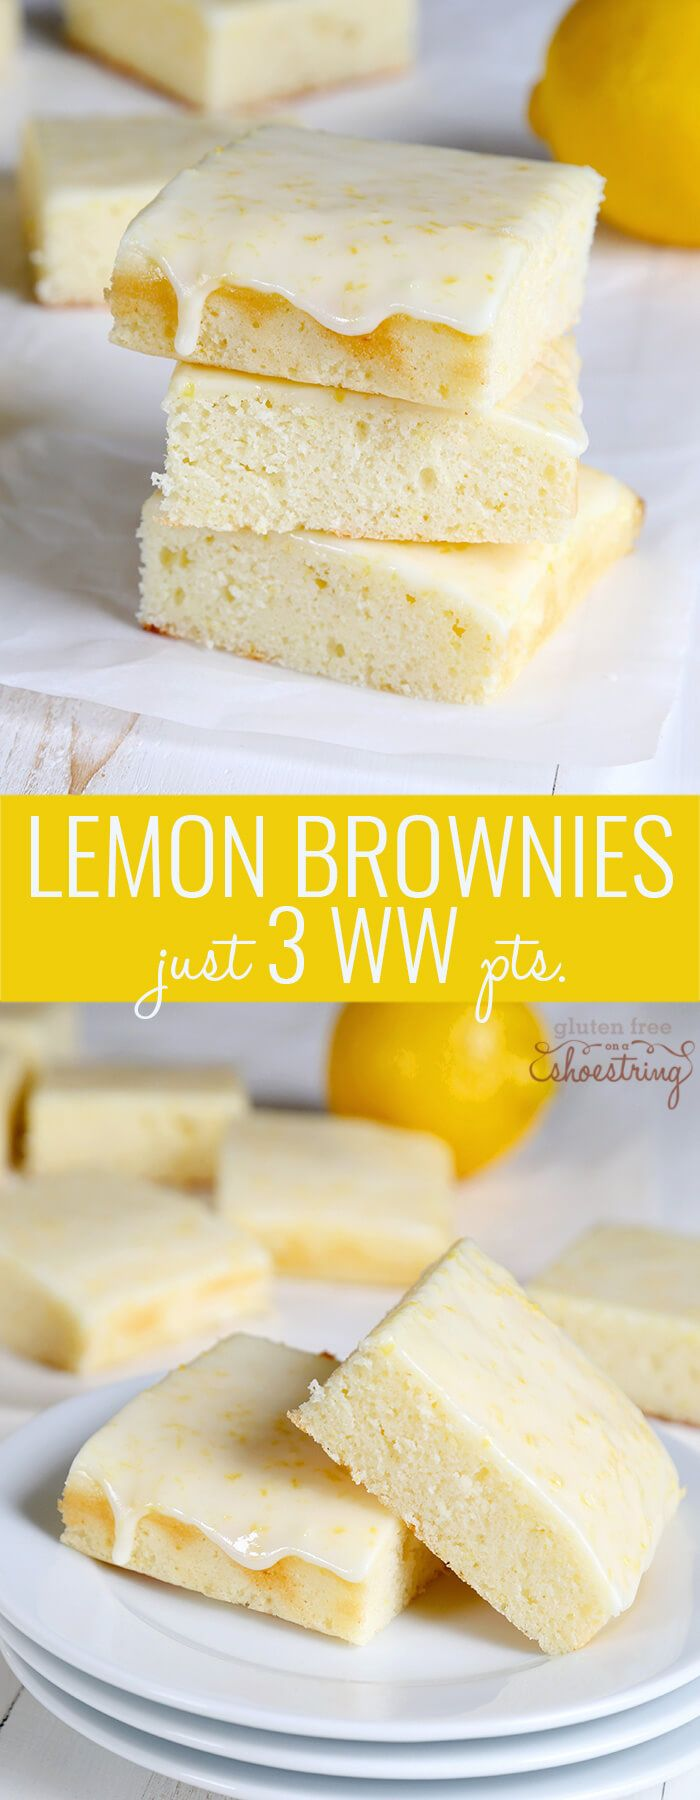 These super light gluten free lemon brownies are made in the Weight Watchers style and have just 3 PointsPlus per generous brownie. Tart and sweet! http://glutenfreeonashoestring.com/weight-watchers-style-gluten-free-lemon-brownies/